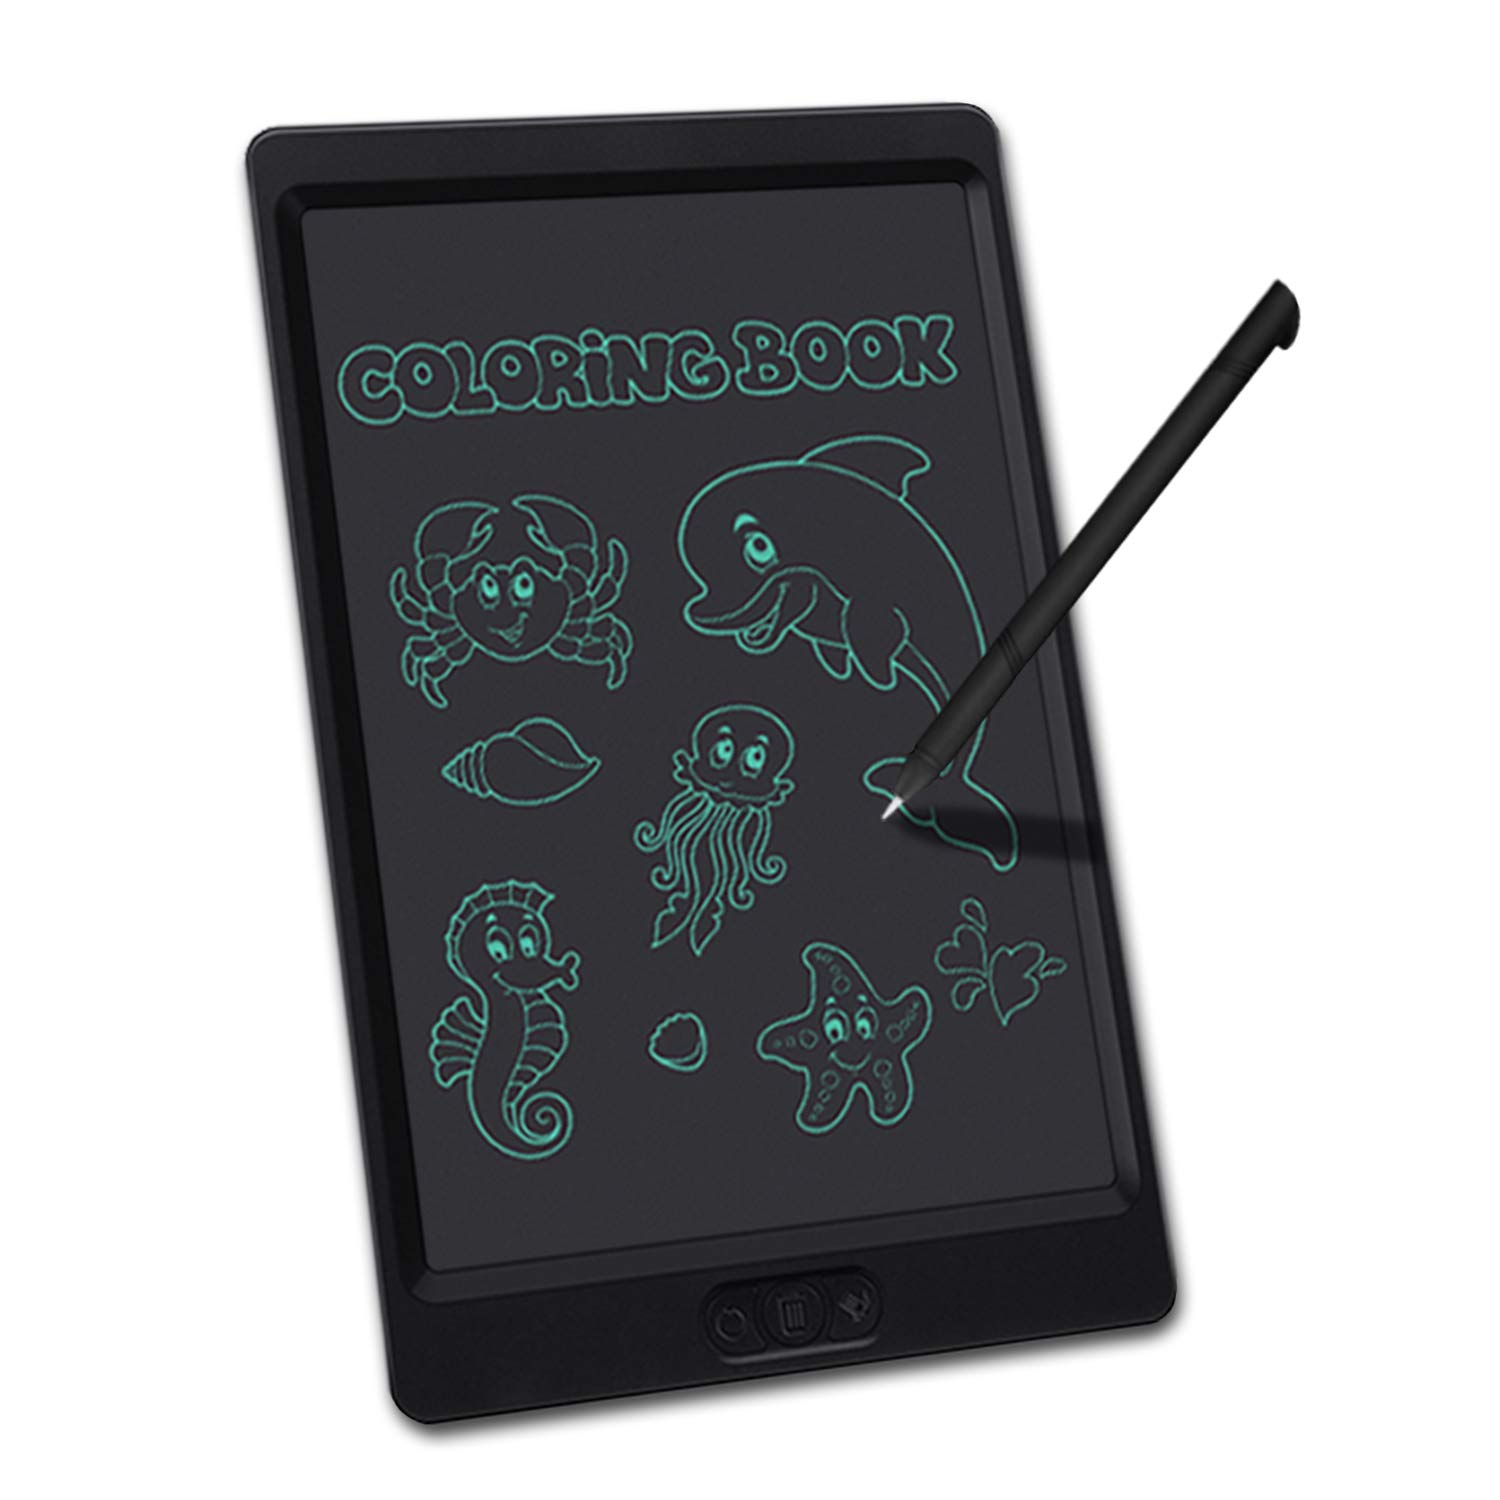 School and Office with Delete Return and Lock Button(Black) LCD Writing Tablet 10 Inch Electronic Drawing and Writing Board for Kids and Adults at Home